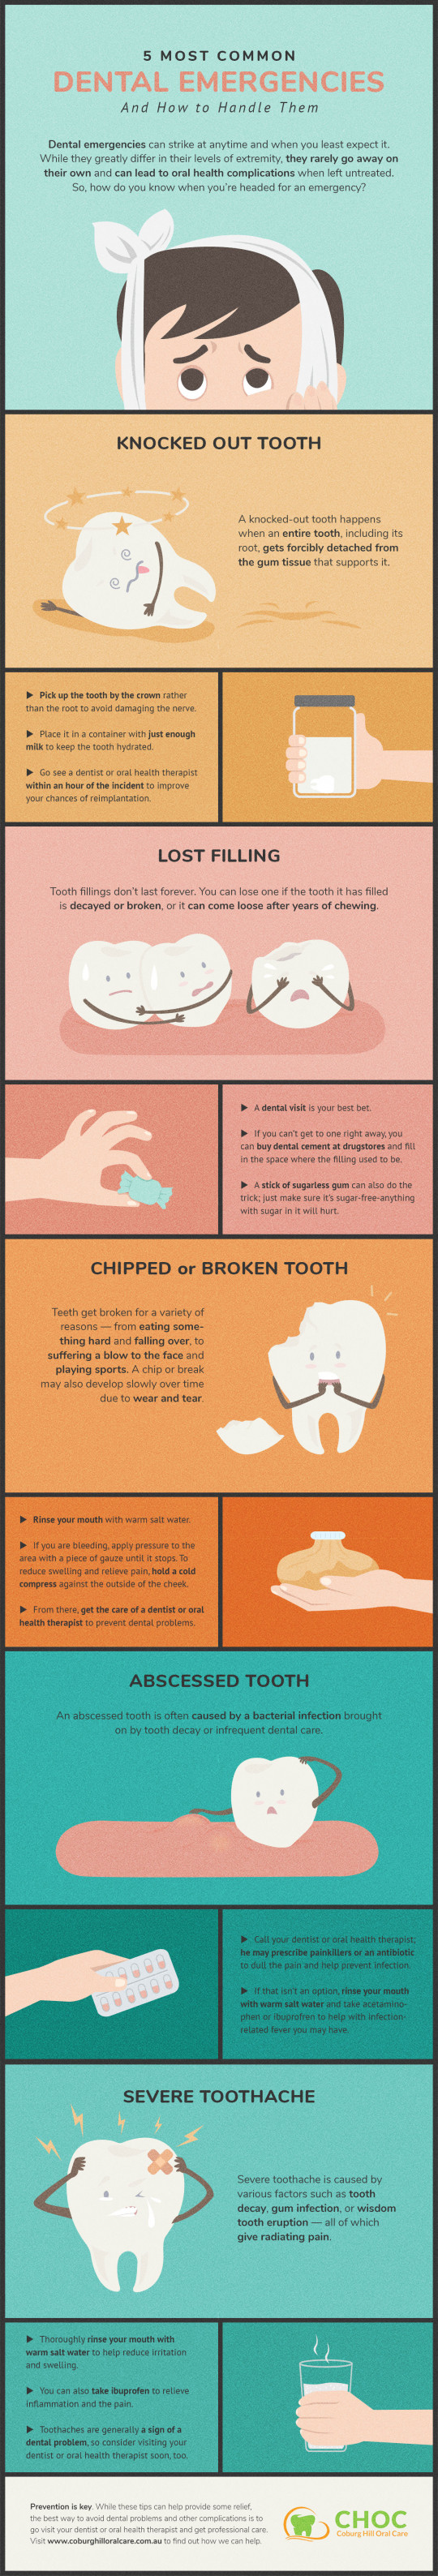 Quick Tips for Handling Common Dental Emergencies